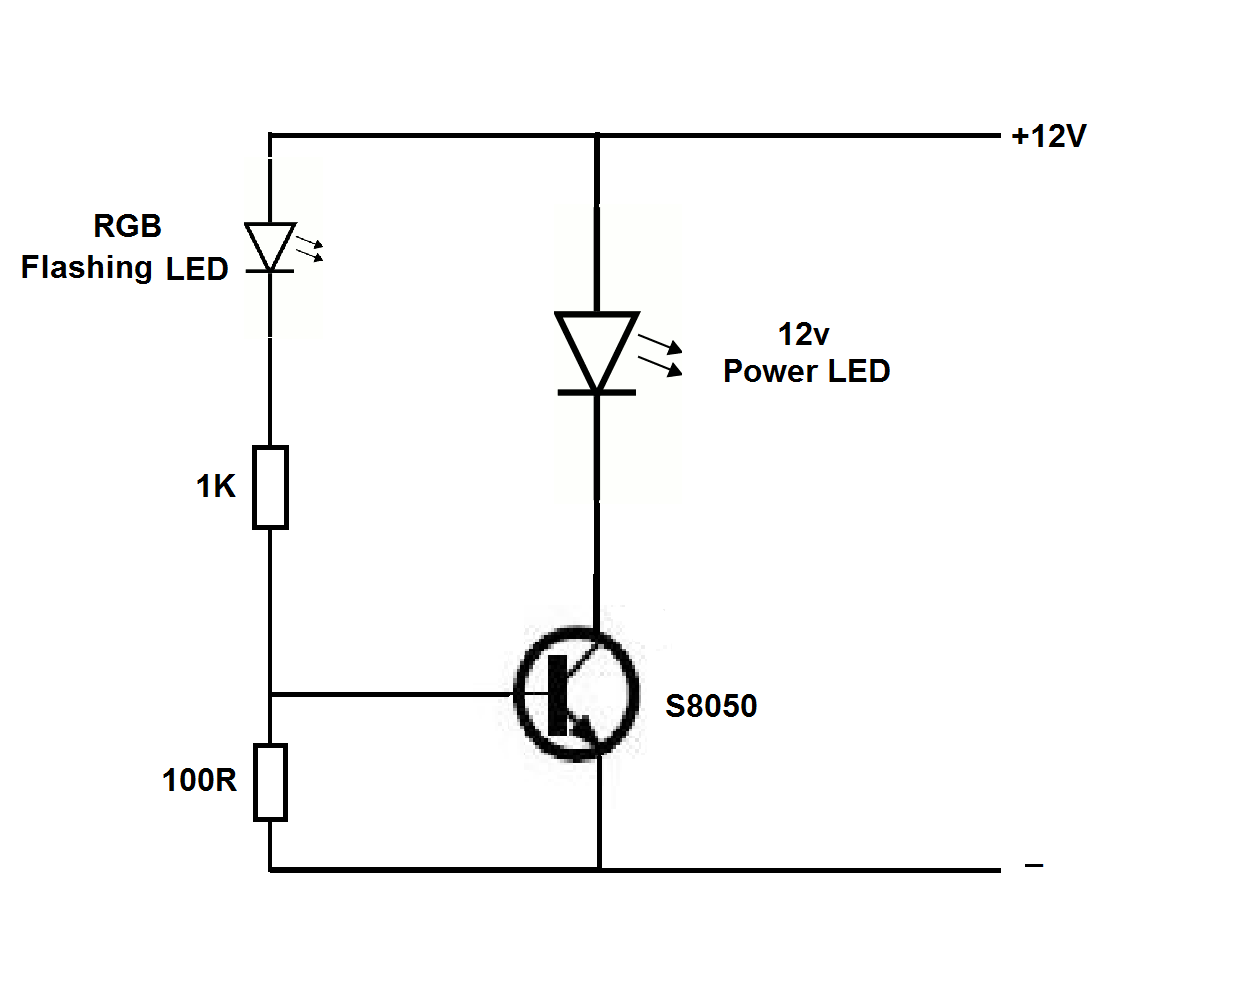 12v power LED flasher circuit using RGB flashing LED ~ Simple Projects